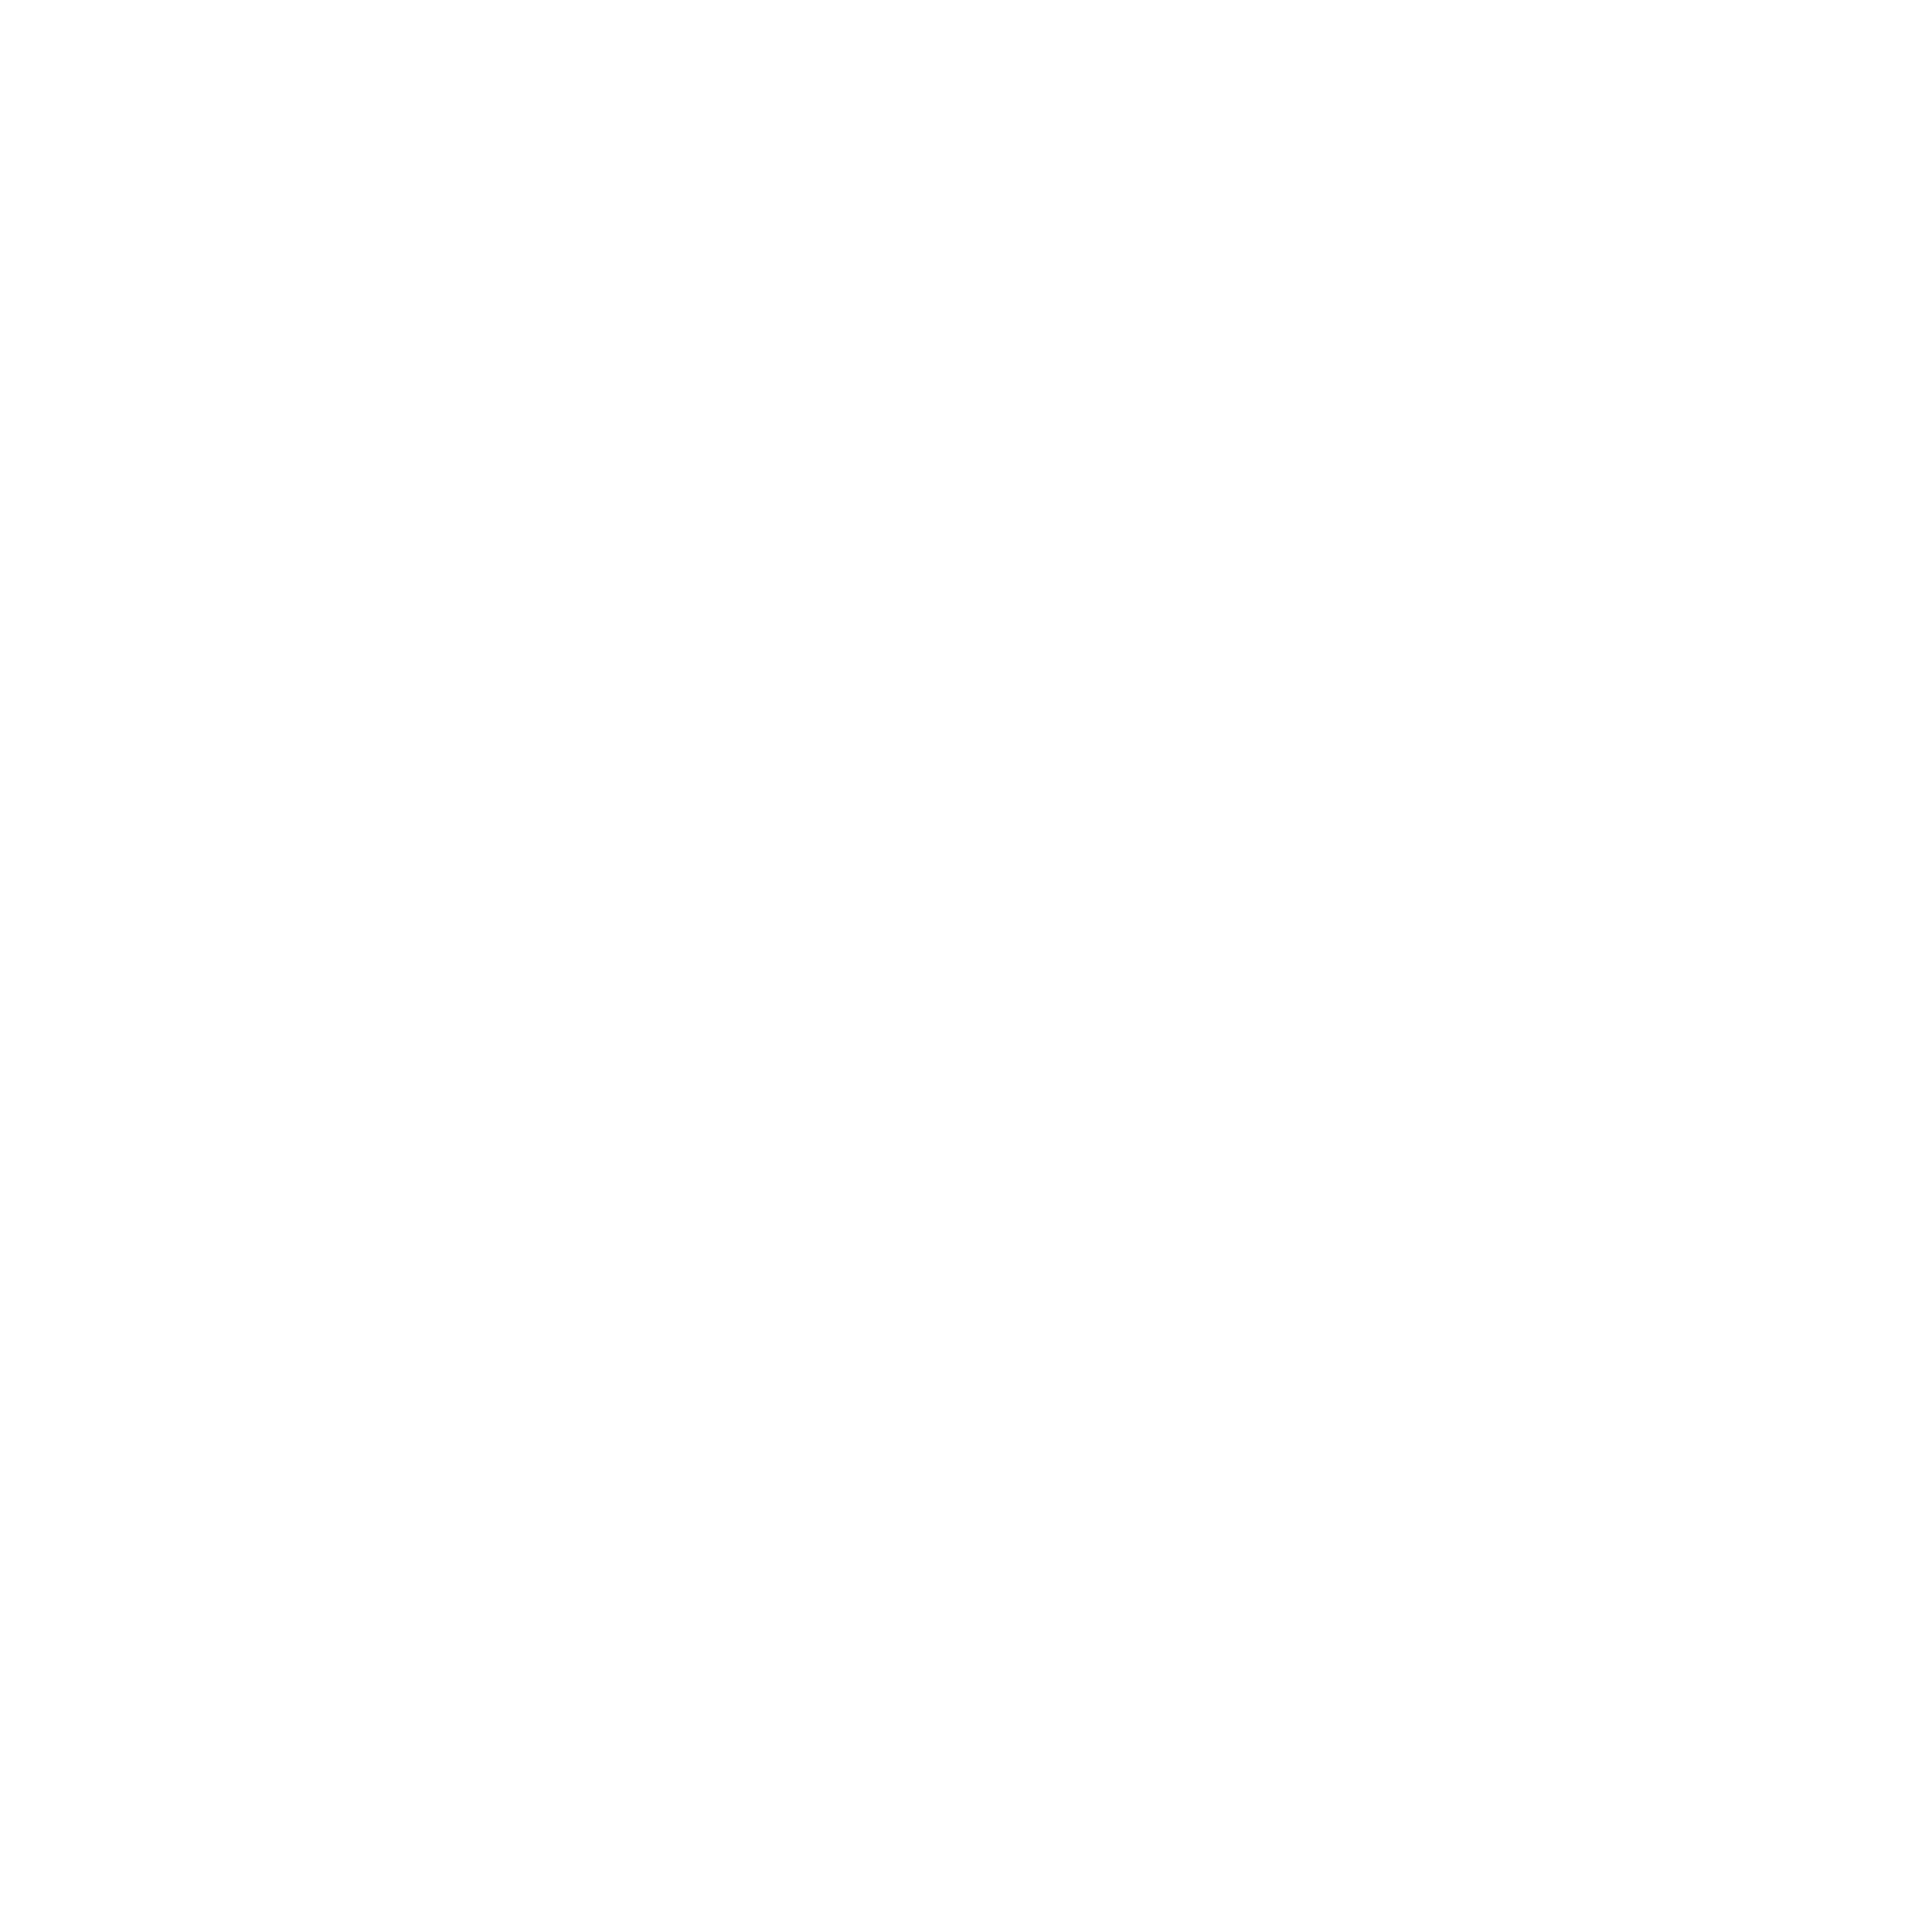 Donald R. Sobey Family Scholarships